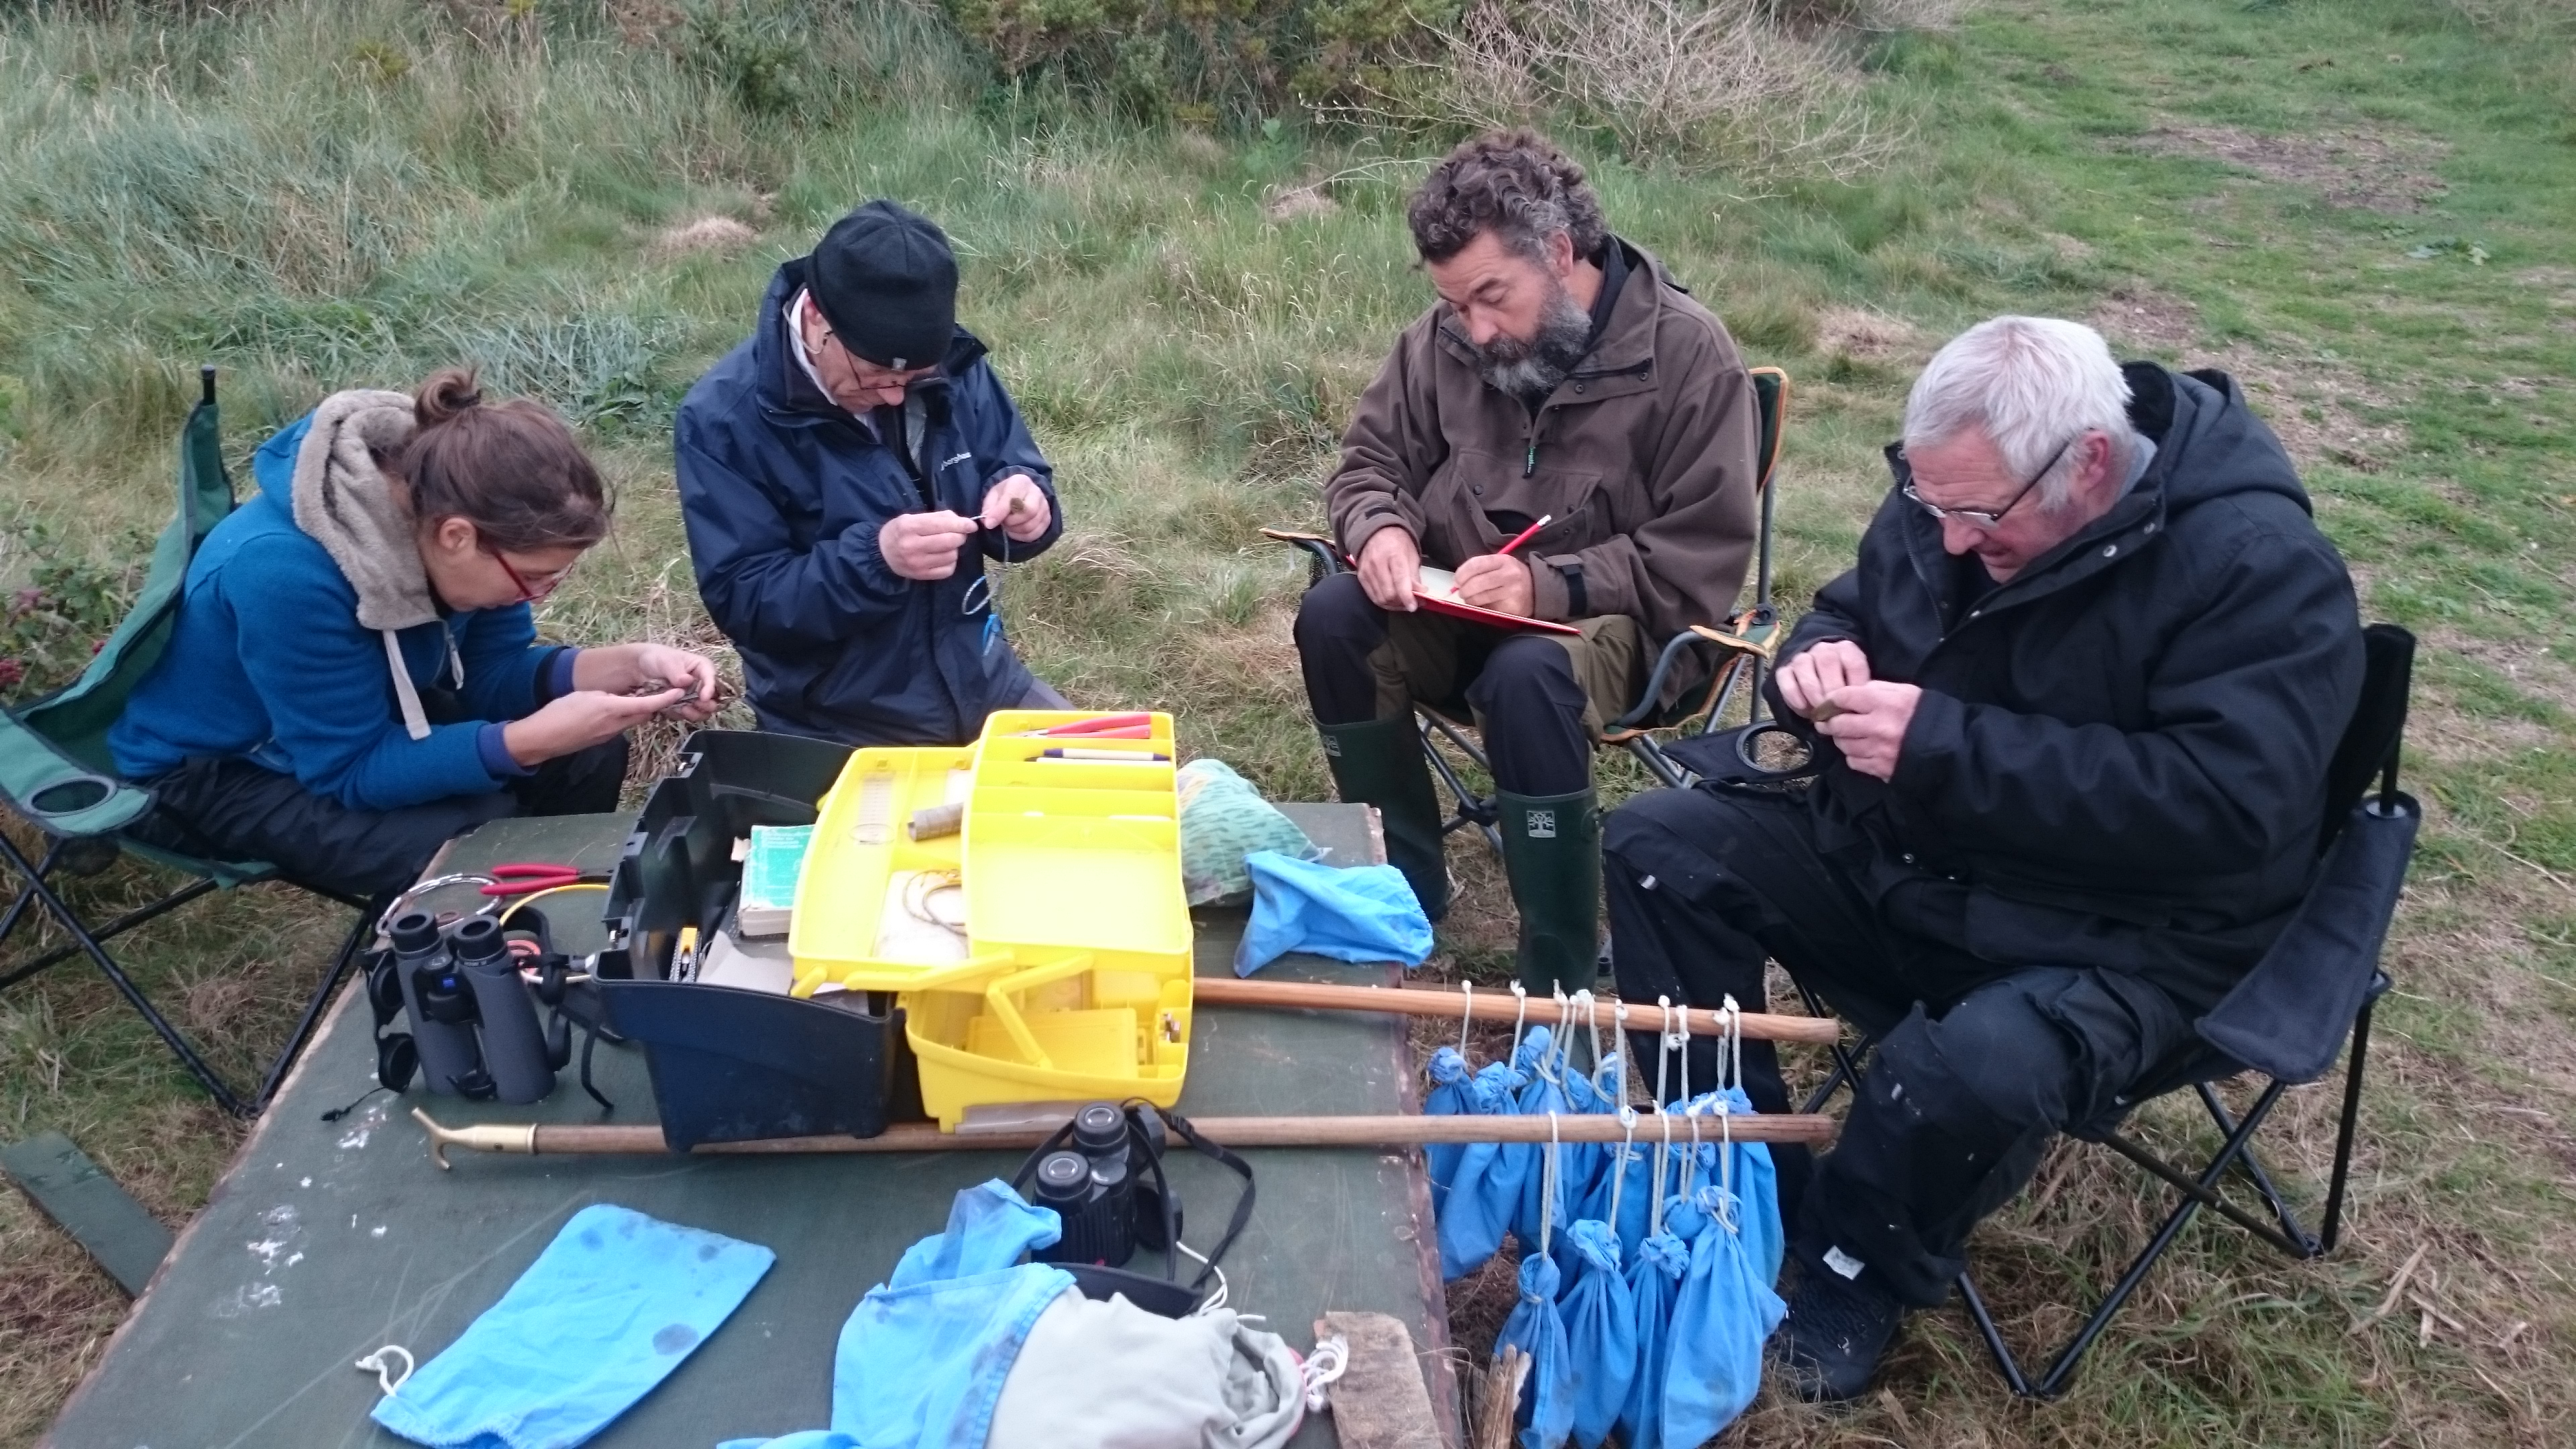 CI bird ringers in action. Alderney ABO conference 8-9 October 2016. Photo by HGYoung (23)